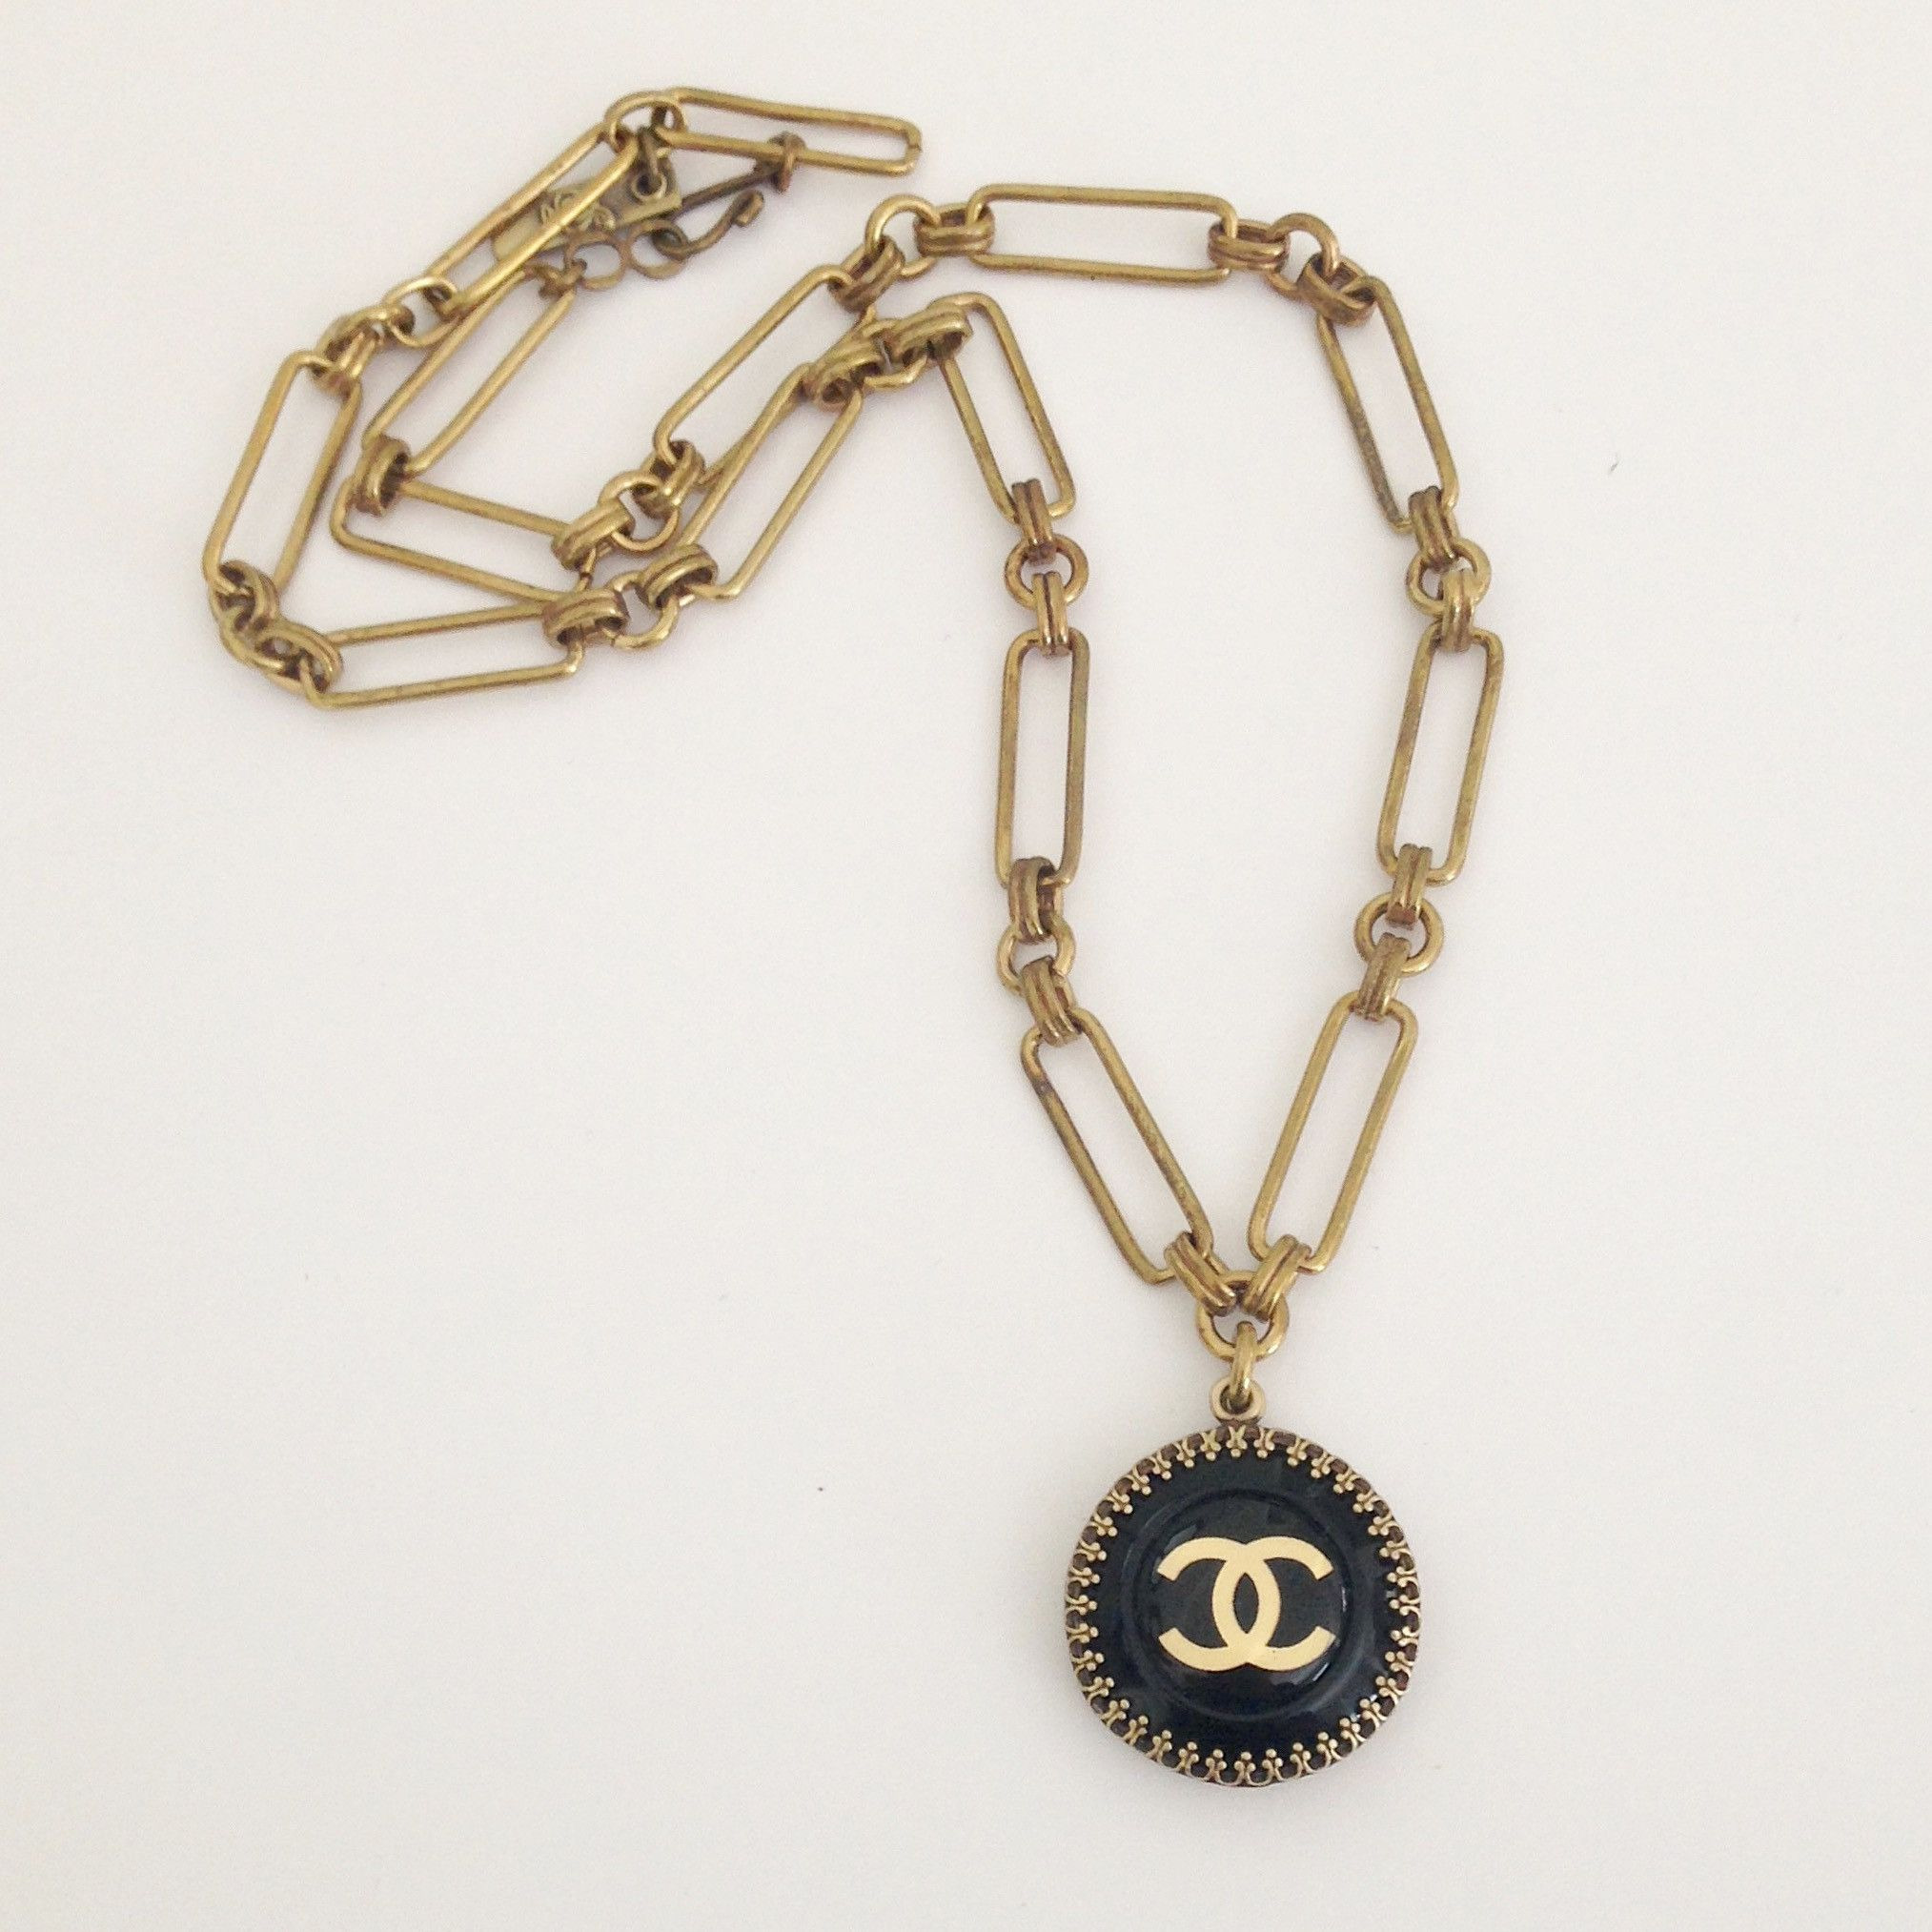 Black Beauty Chanel Button Necklace